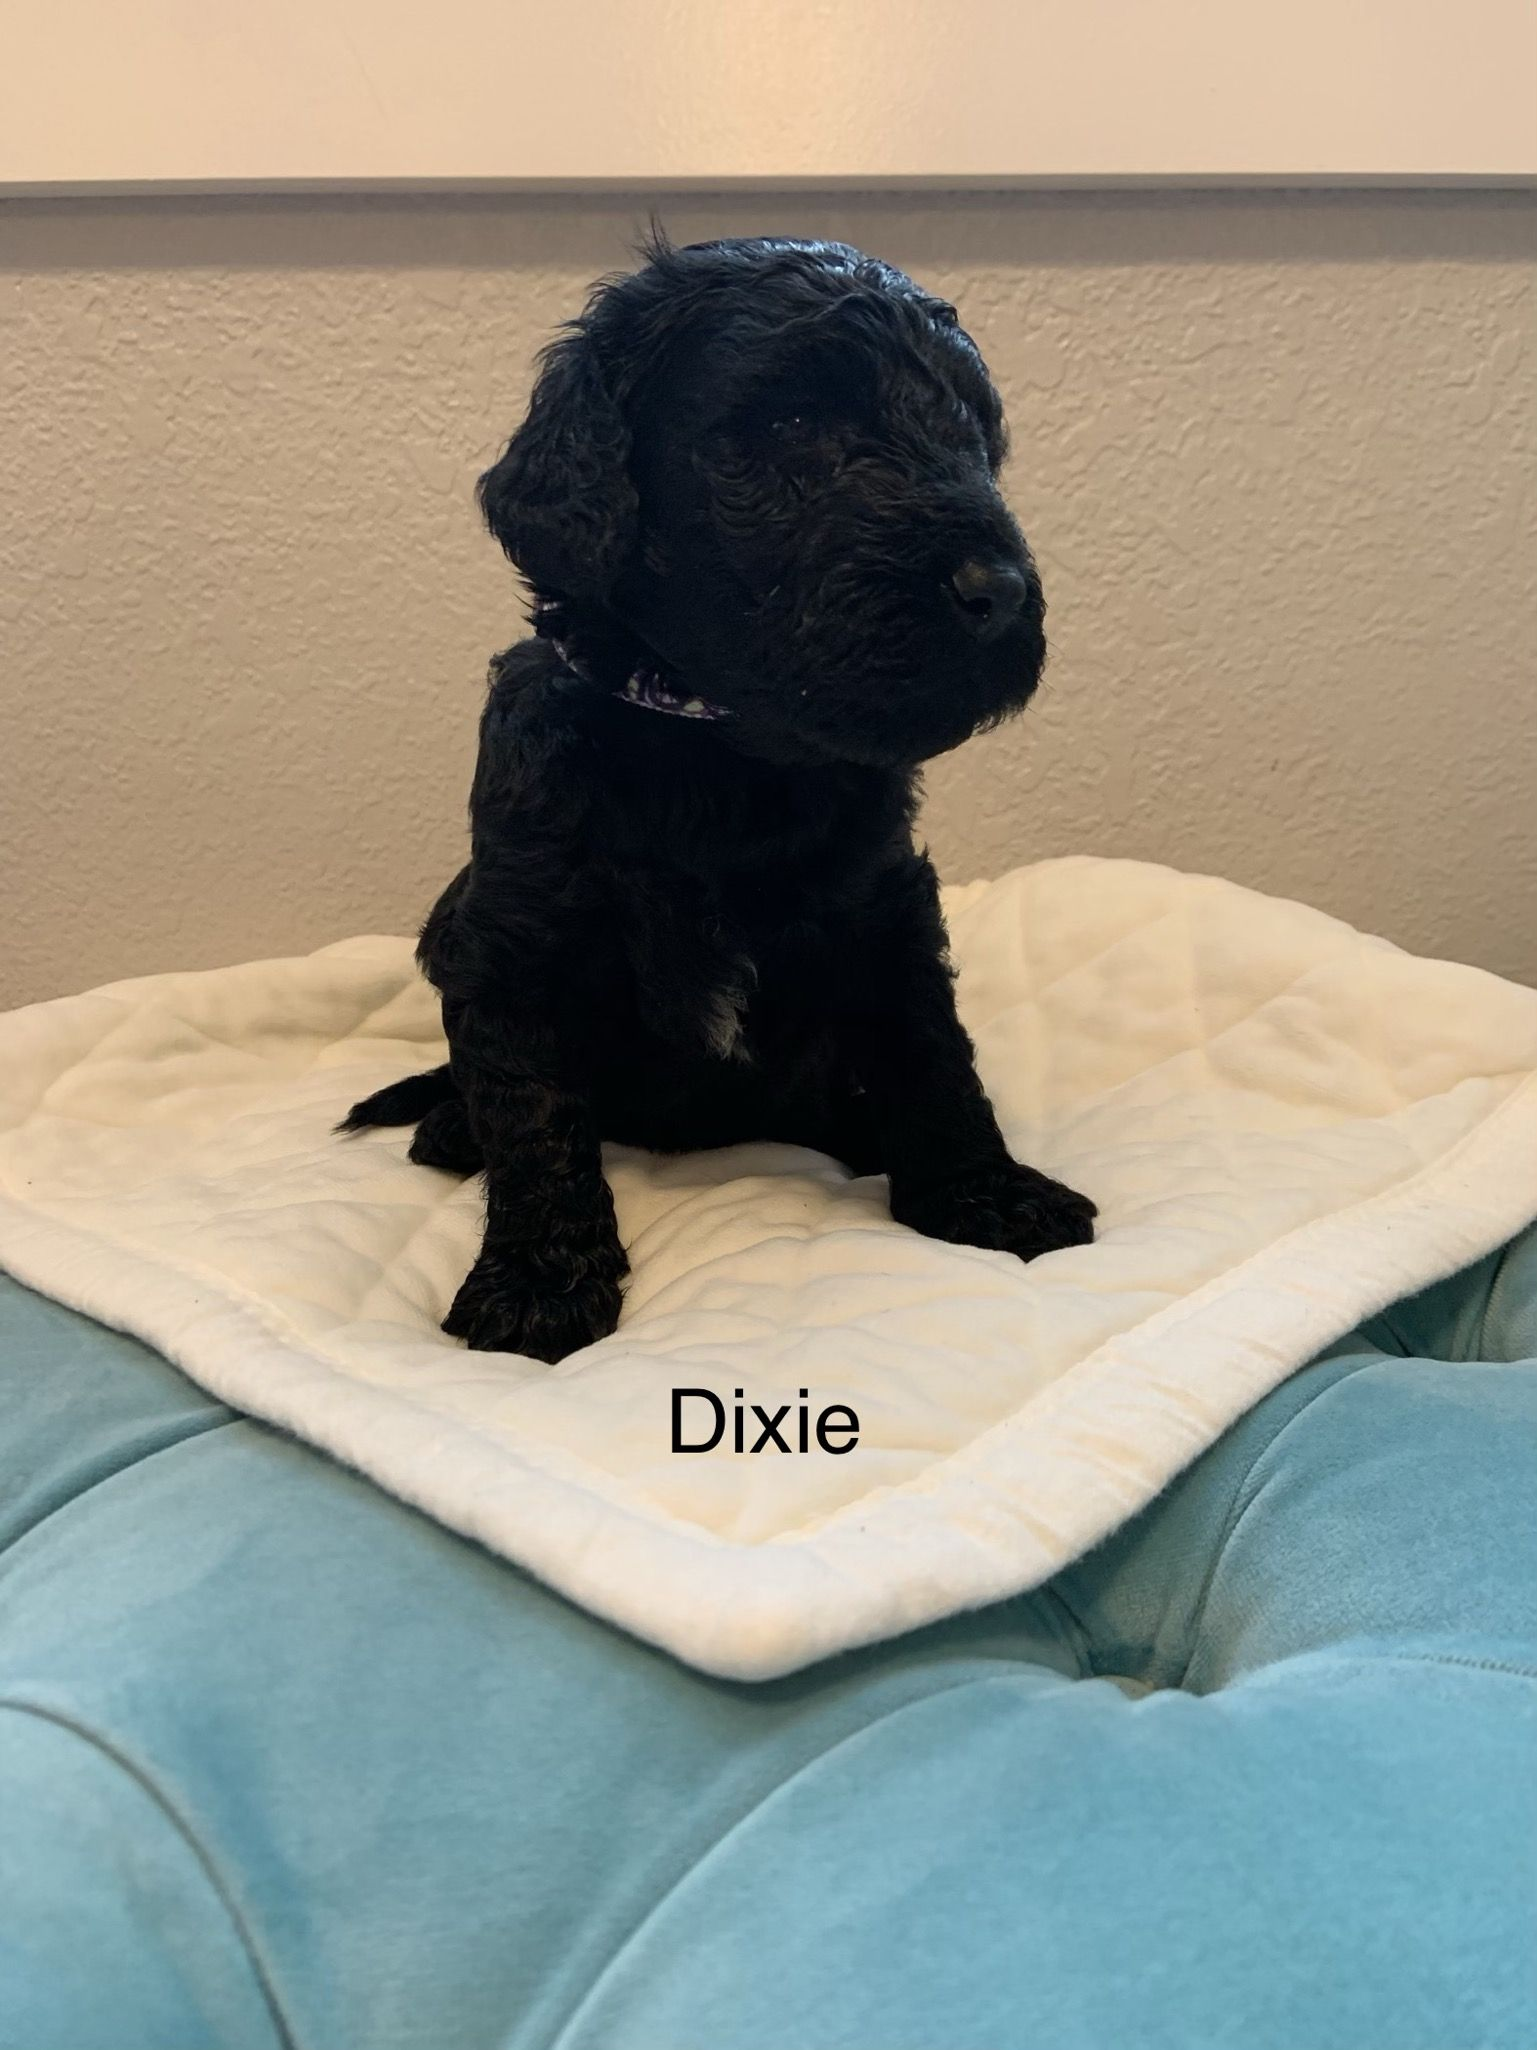 Dixie female Goldendoodle puppy for sale in Colorado.